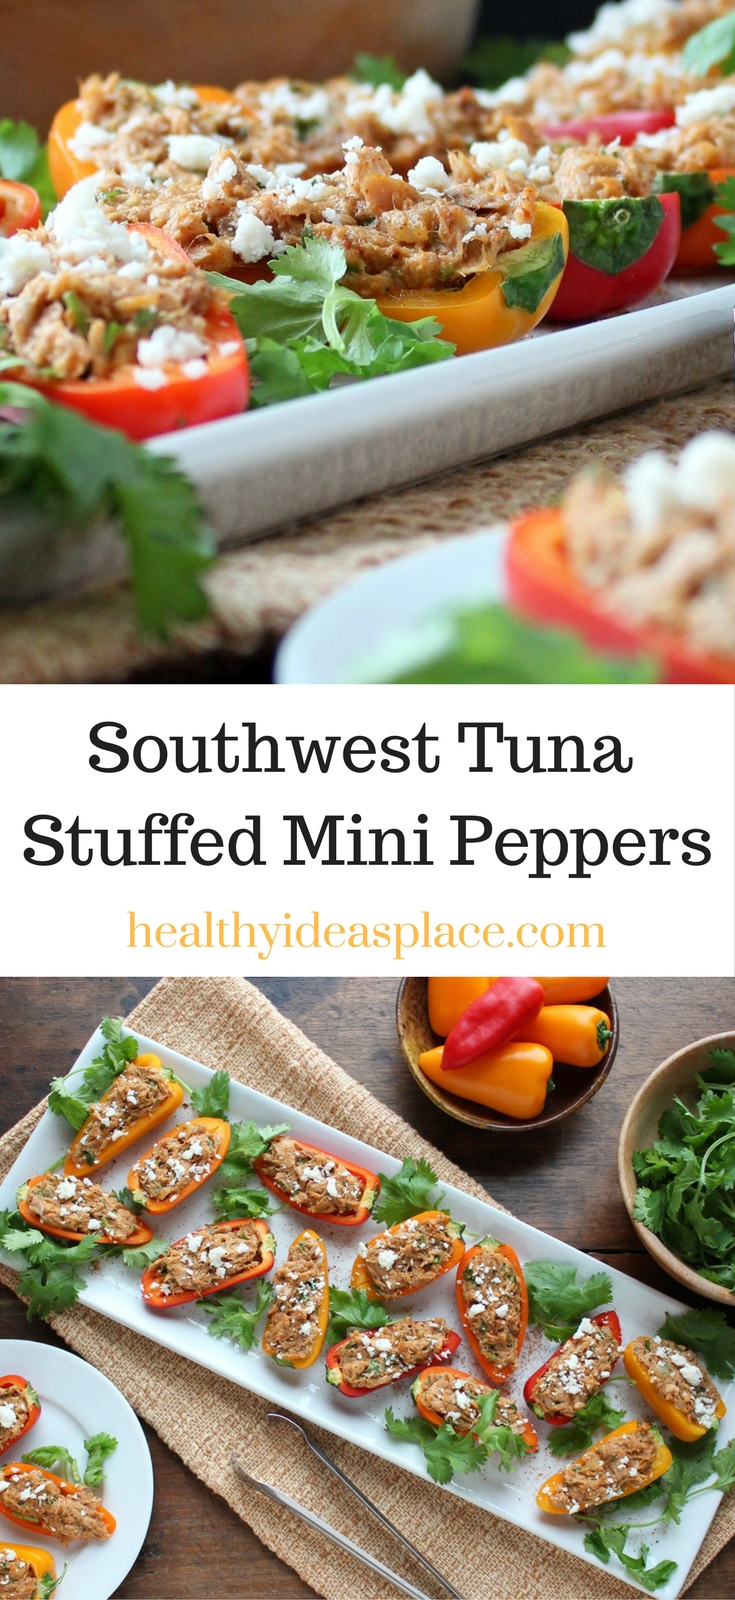 Southwest Tuna Stuffed Mini Peppers - a healthy appetizer that's quick and easy to make, but filled with flavor and touch of heat!